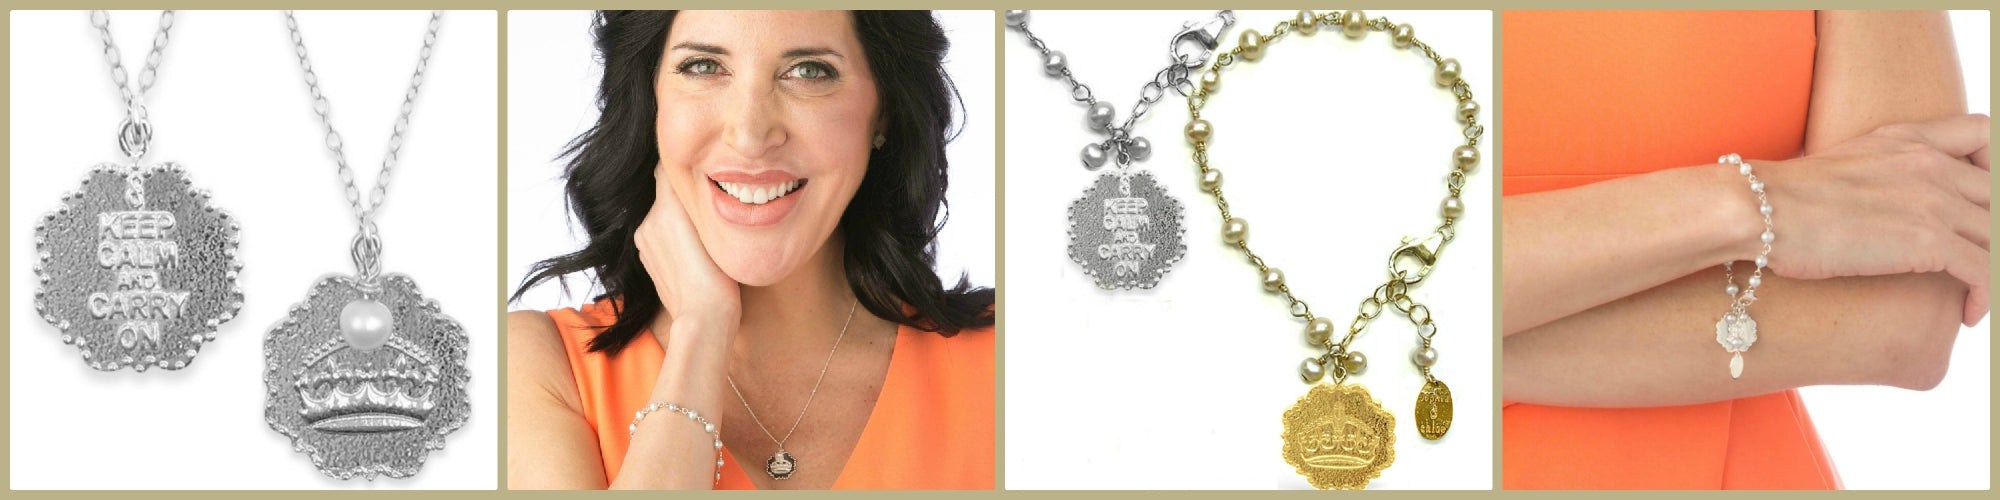 Keep Calm and Carry On necklace and bracelet allison lower epicurean diva